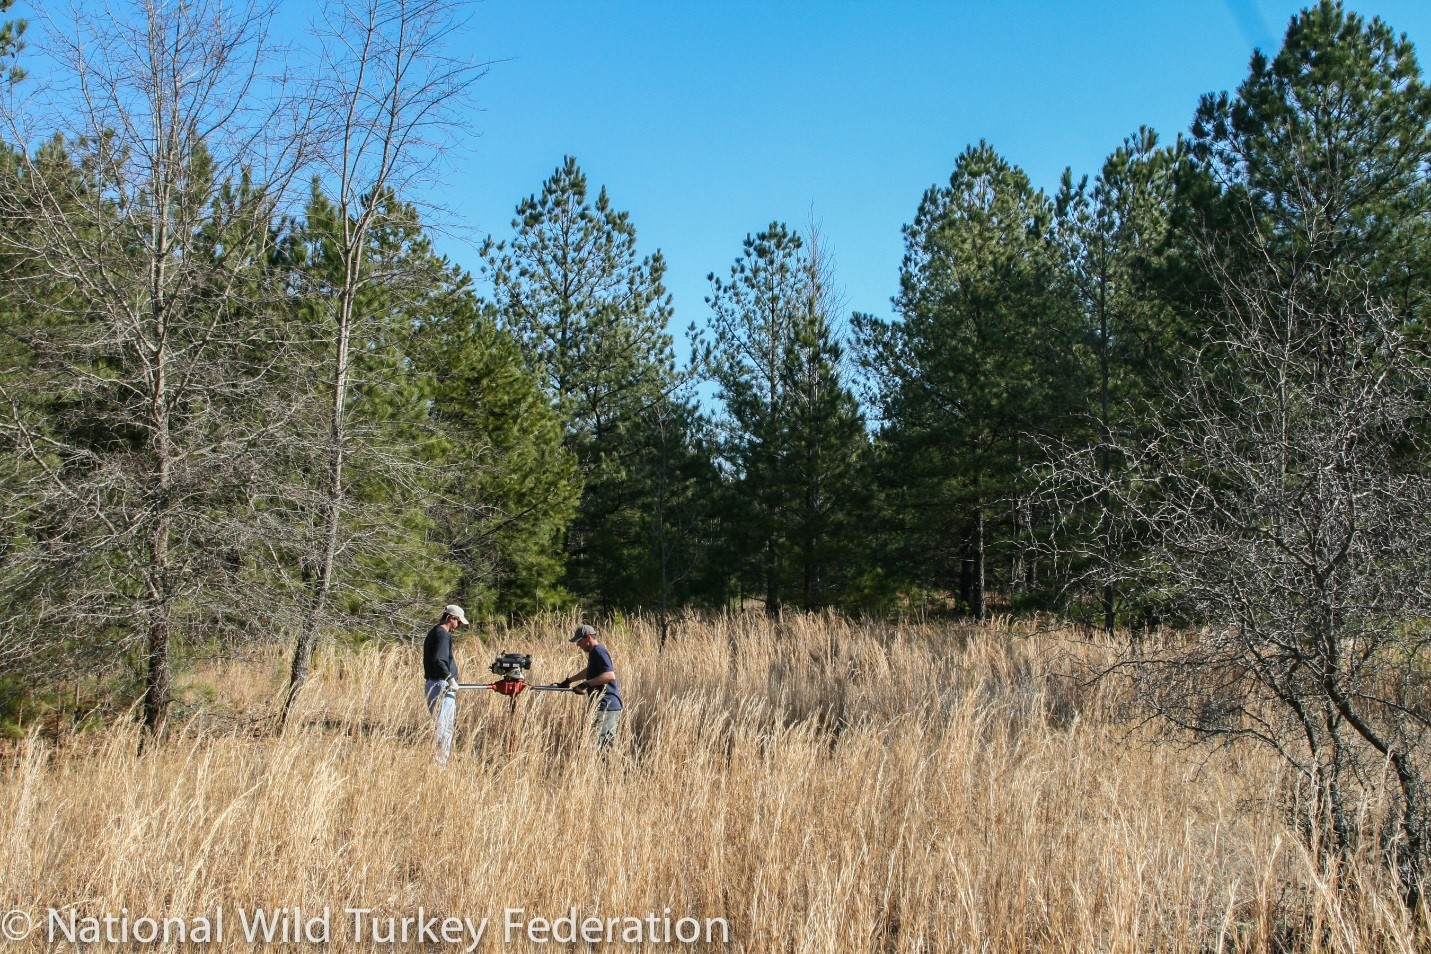 A photo of Field work for habitat improvement for the Eastern Wild Turkey